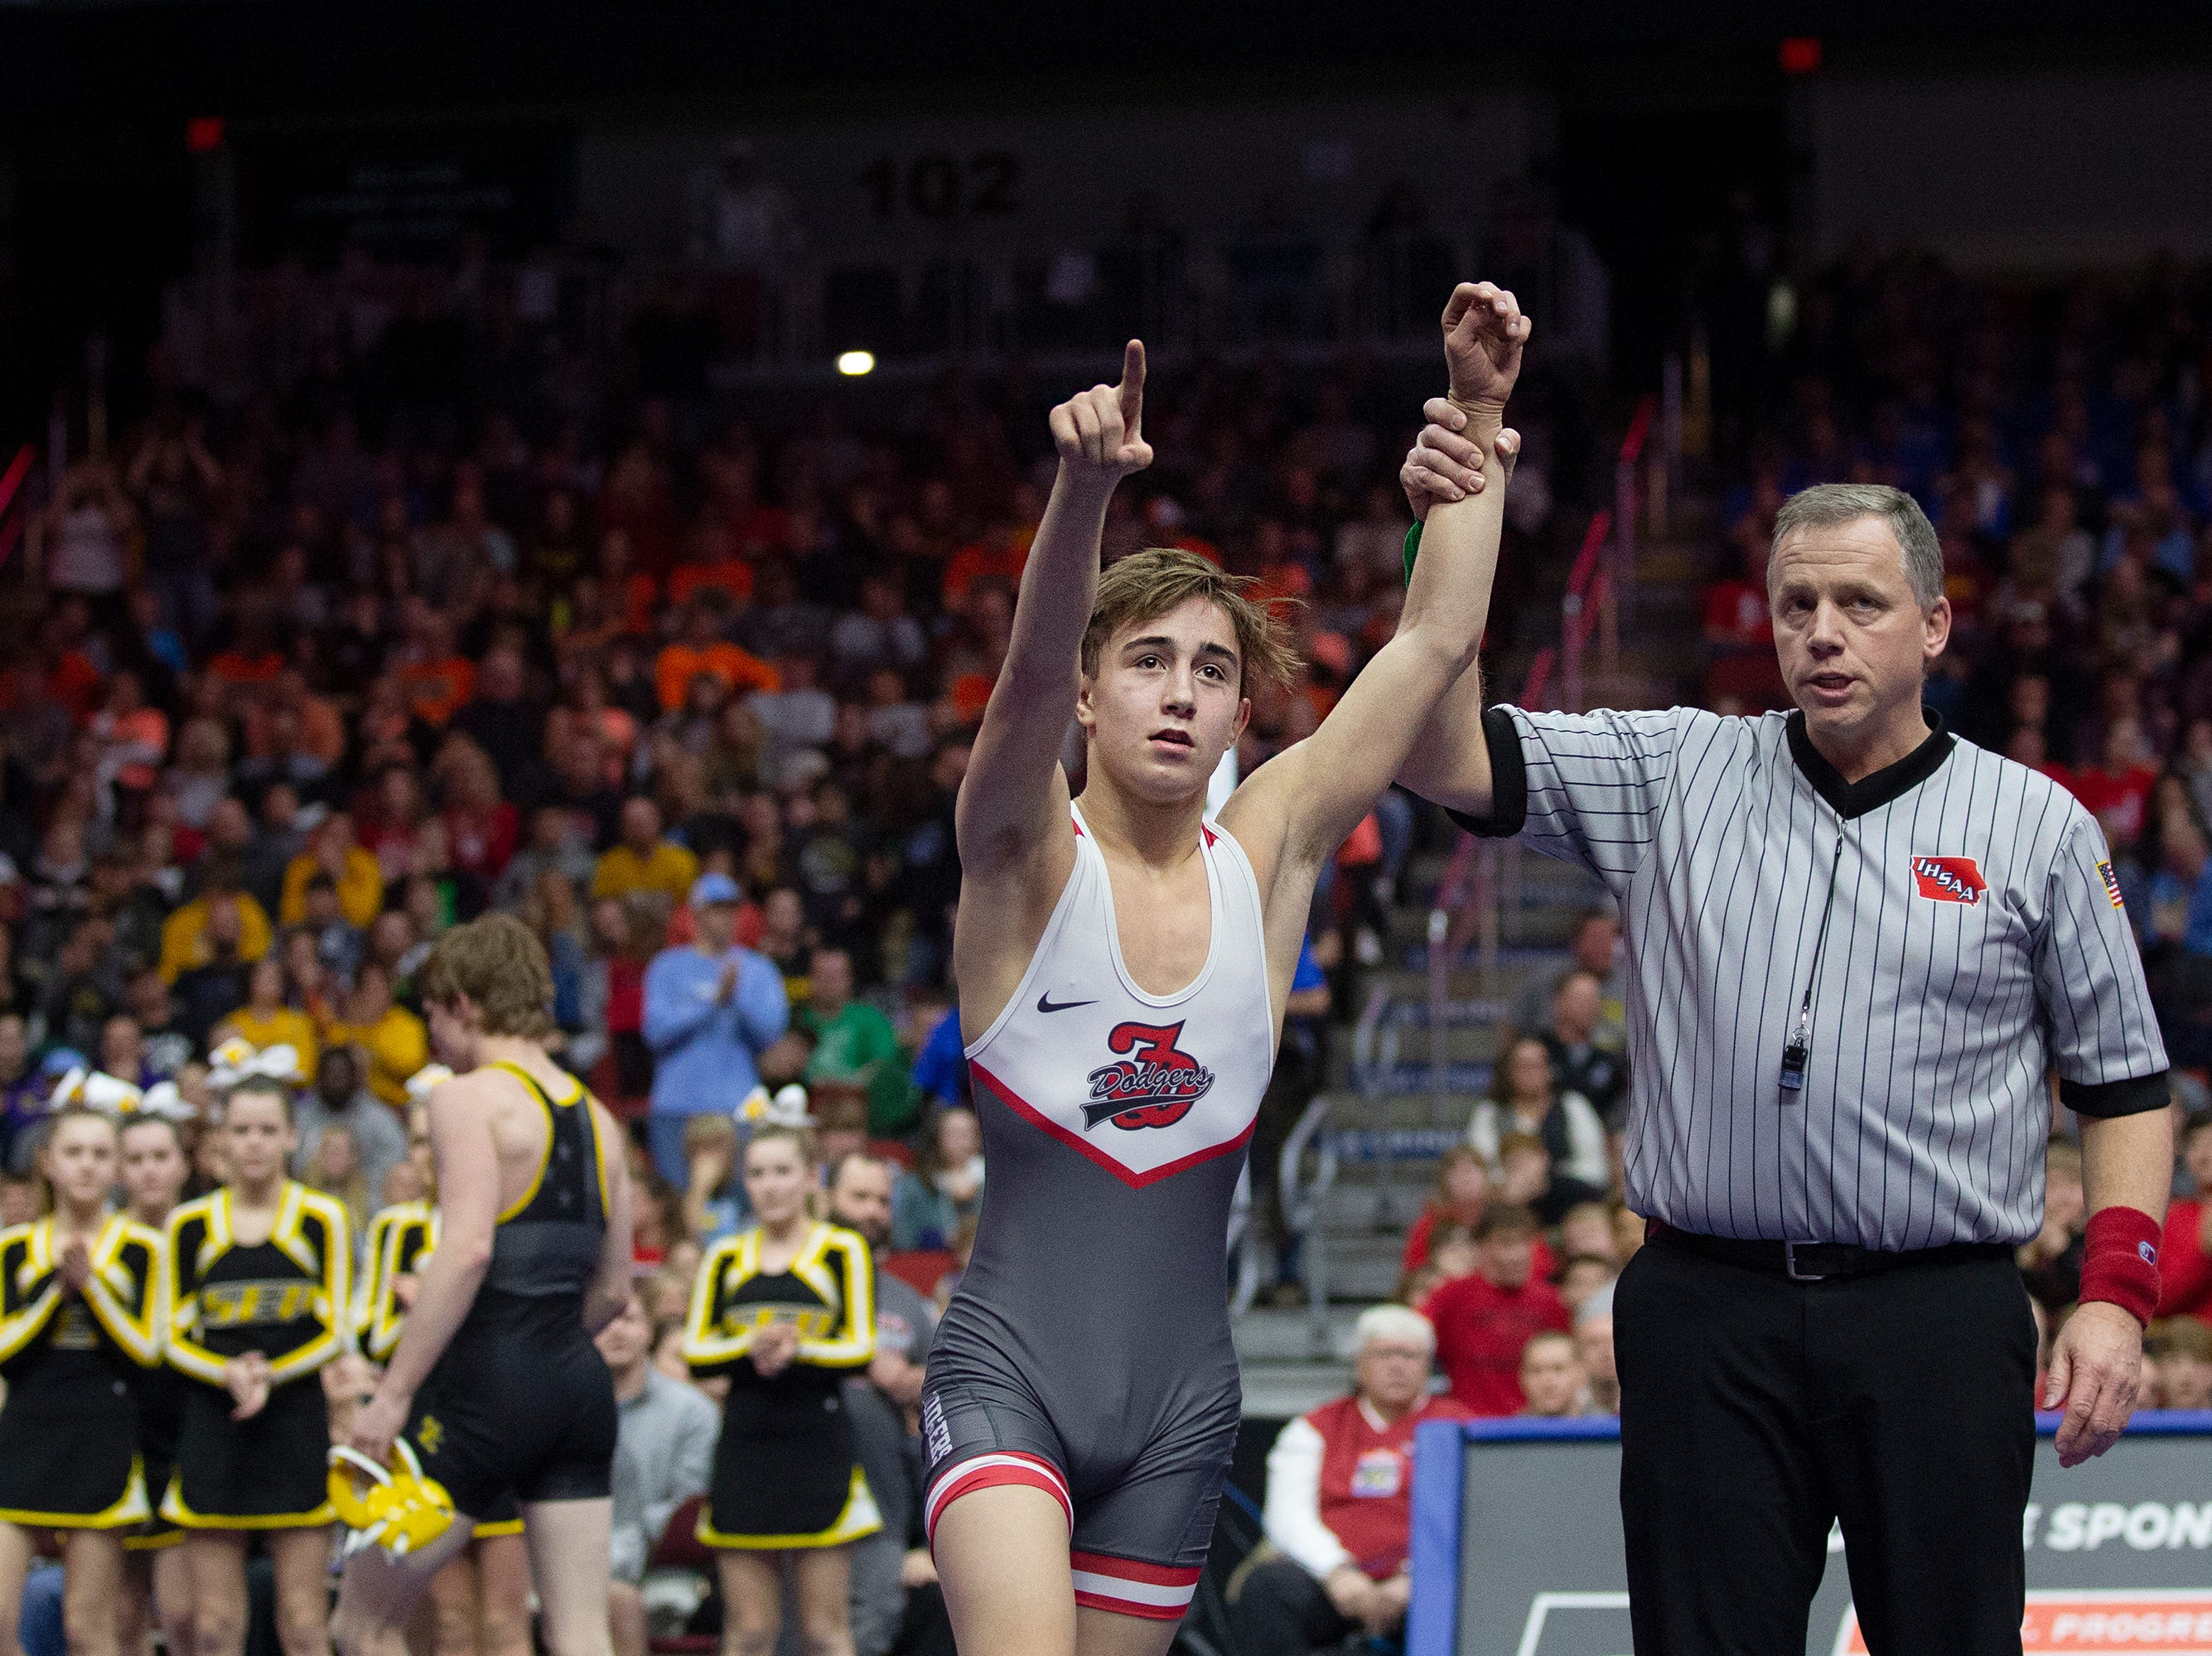 Fort Dodge's Drake Ayala wins the 113 pound Class 3A championship match against Southeast Polk's Devin Harmison during the Iowa high school state wrestling tournament on Saturday, Feb. 16, 2019, in Wells Fargo Arena.